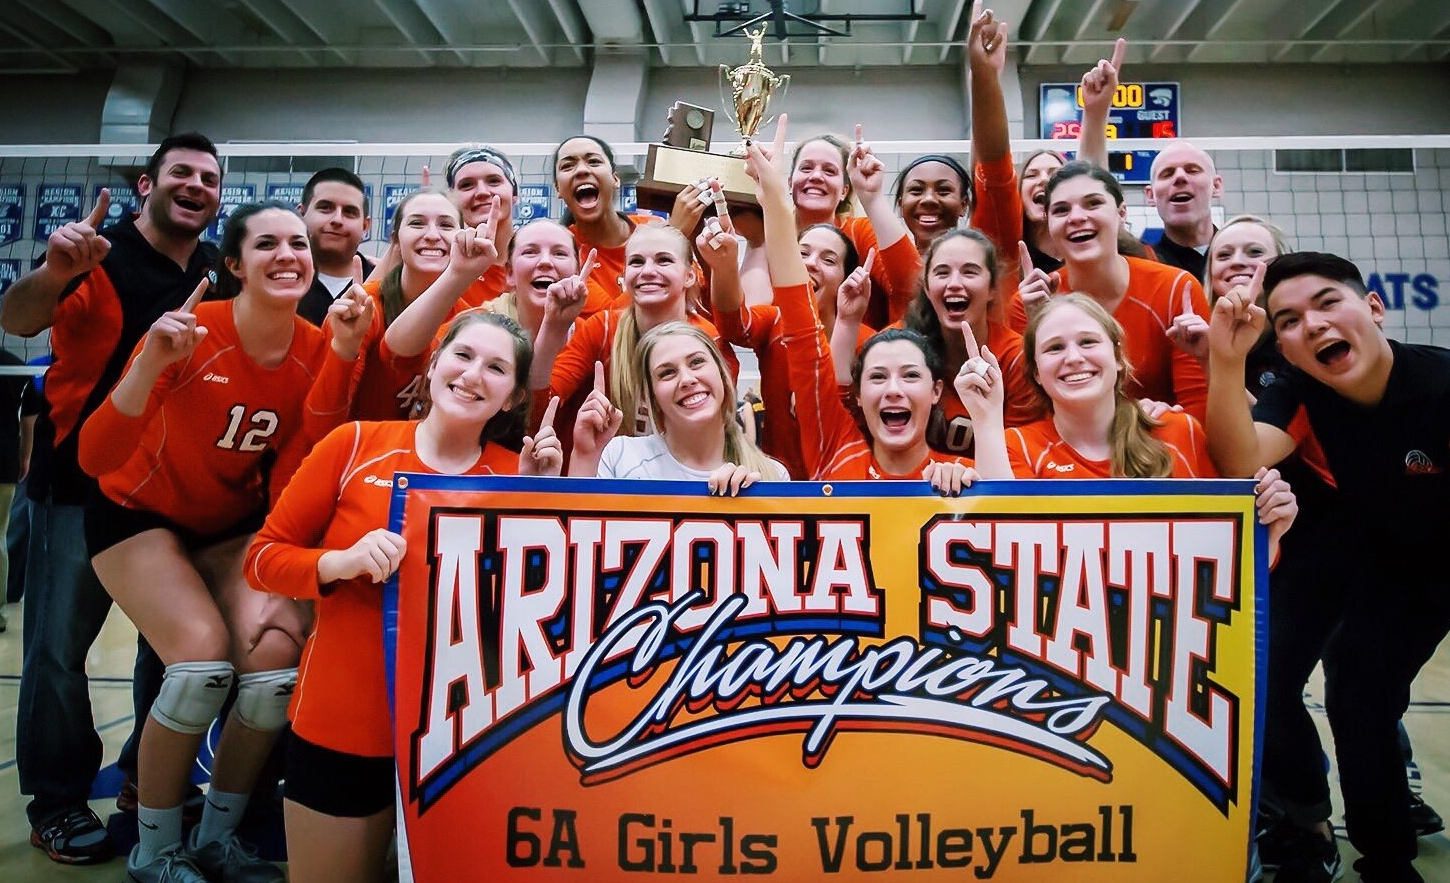 Corona's girls volleyball team has won the Division 6A state championship.